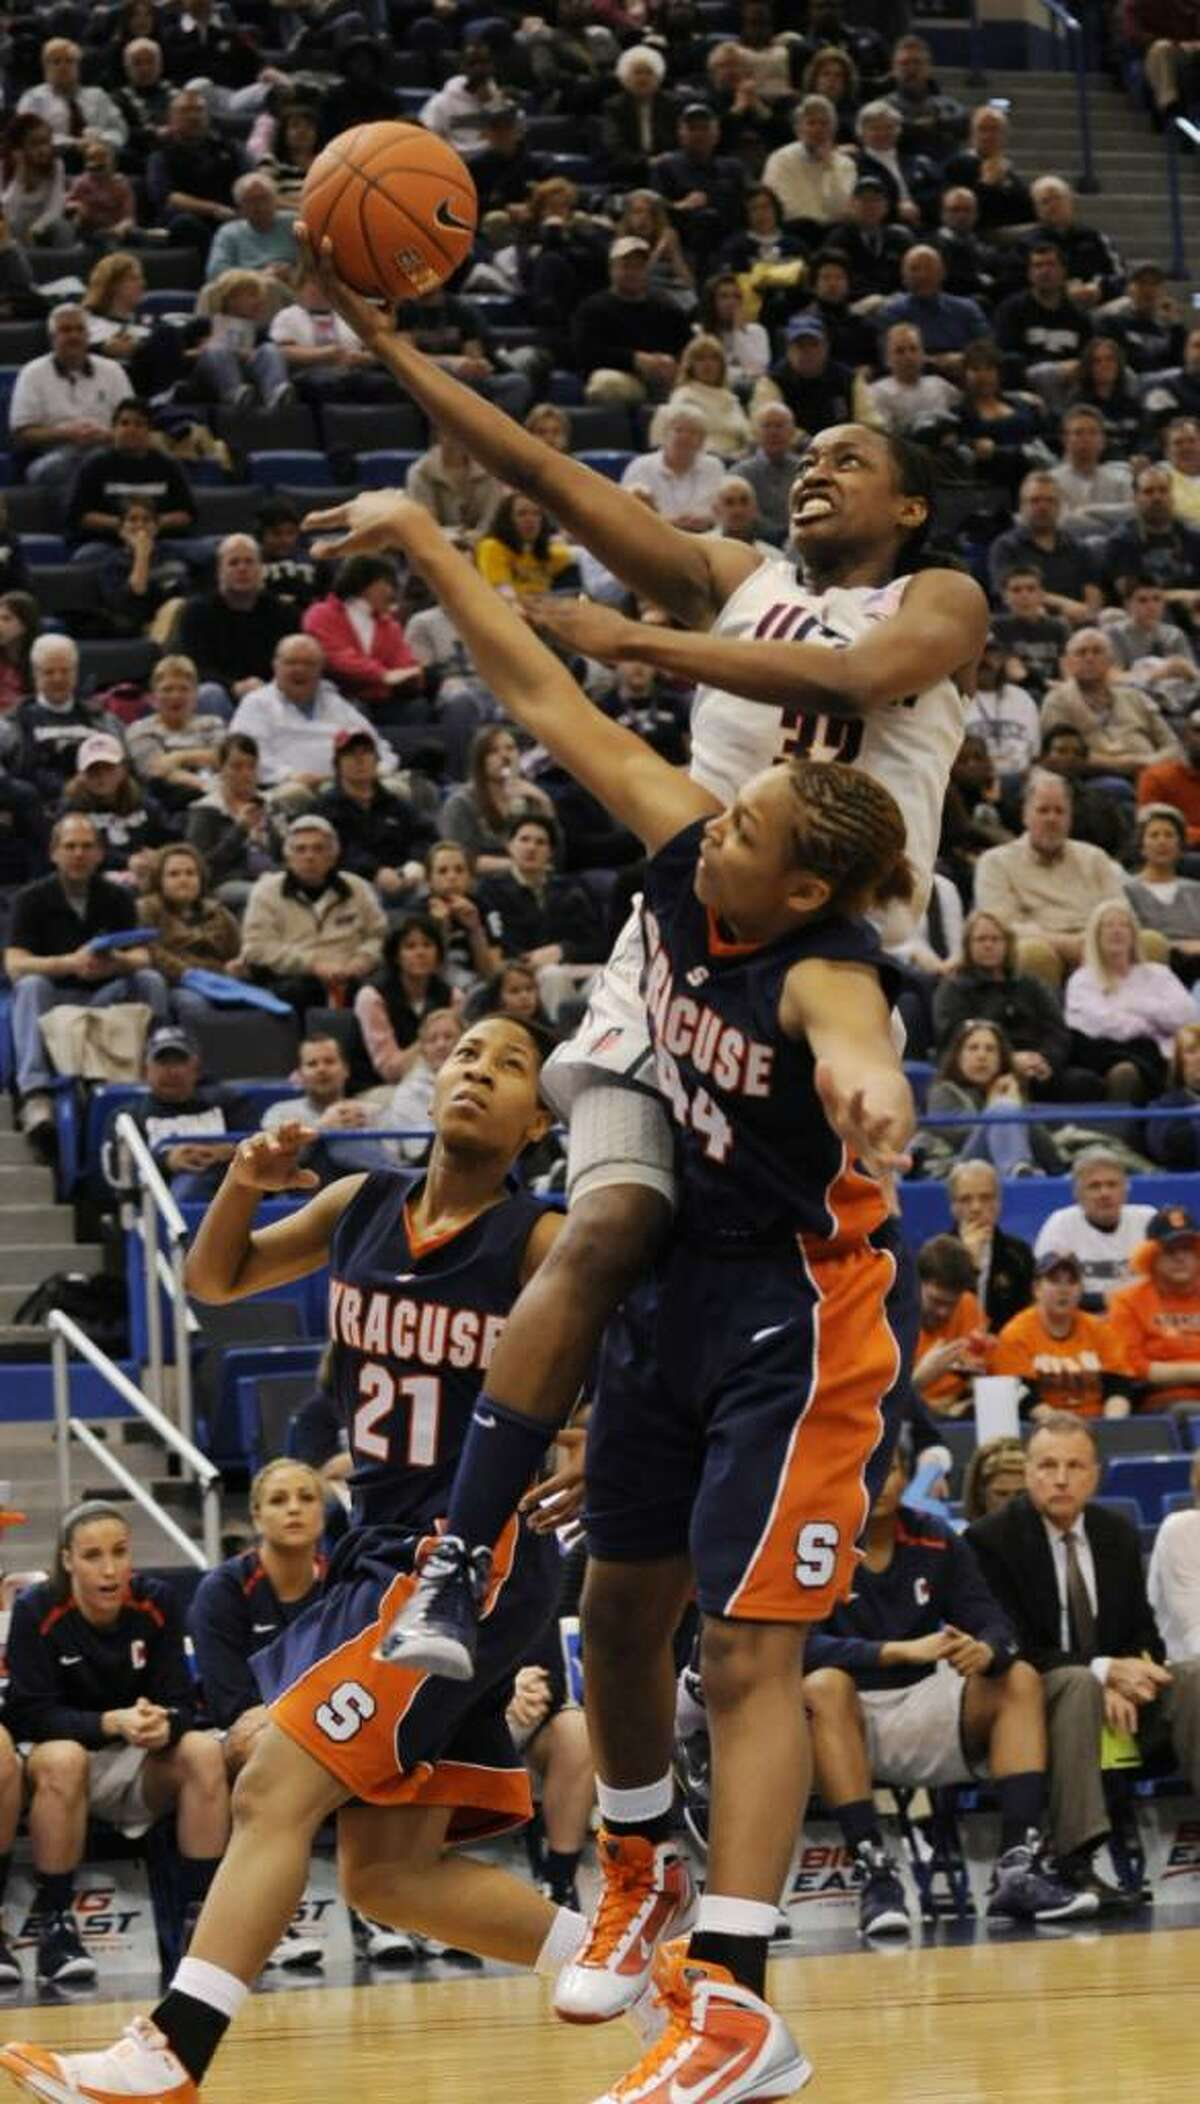 Connecticut's Kalana Greene goes up for a shot past Syracuse's Erica Morrow, left, in the second half of an NCAA college Big East Championship quarterfinal women's basketball game in Hartford, Conn., Sunday, March 7, 2010. Connecticut won 77-41. (AP Photo/Bob Child)